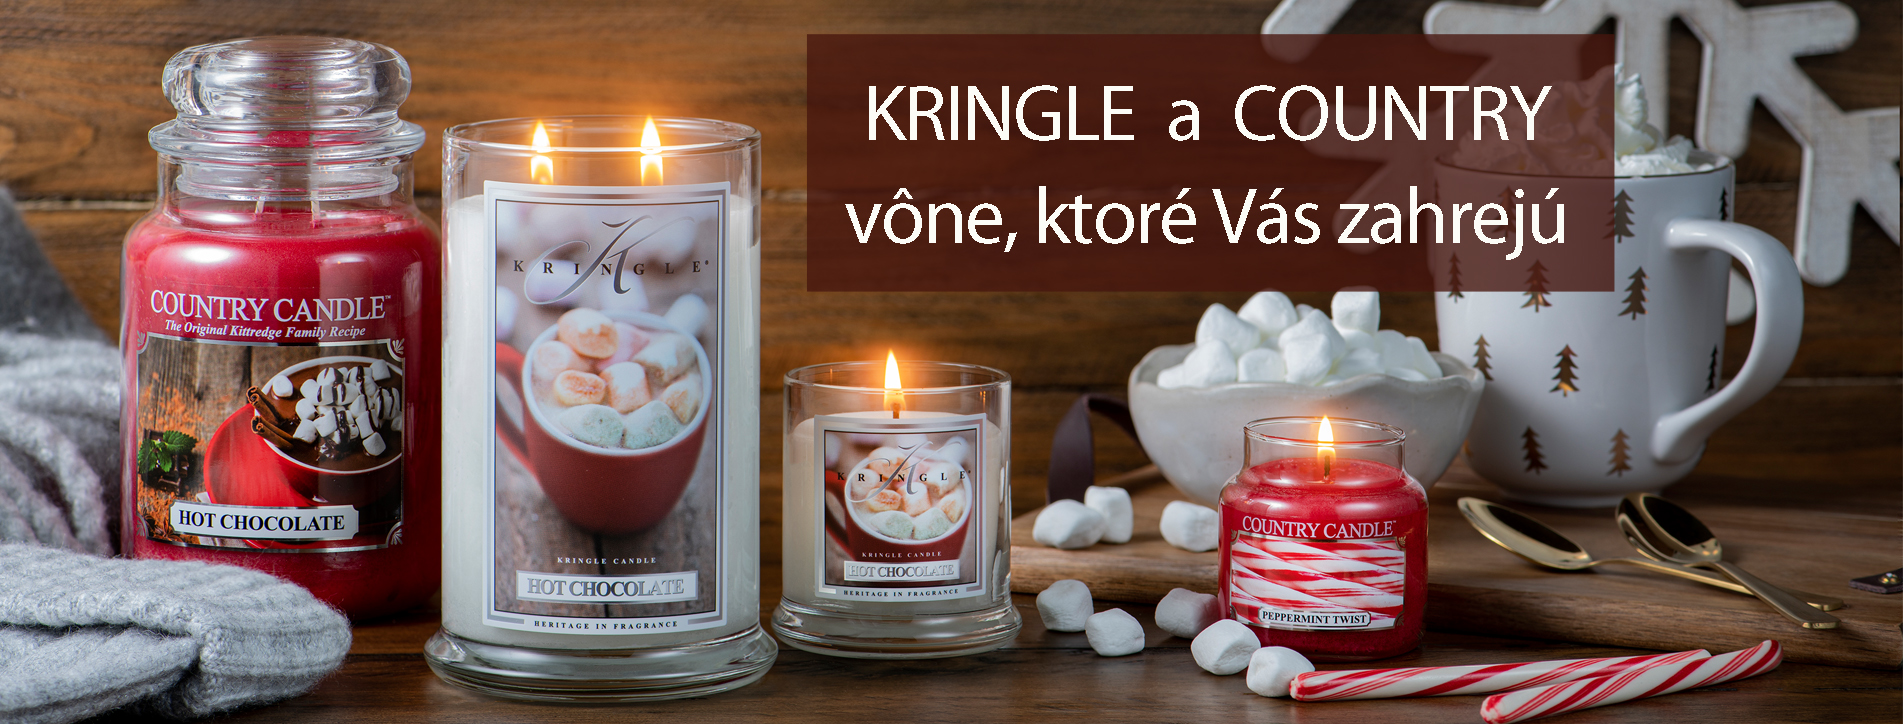 KRINGLE & COUNTRY CANDLE